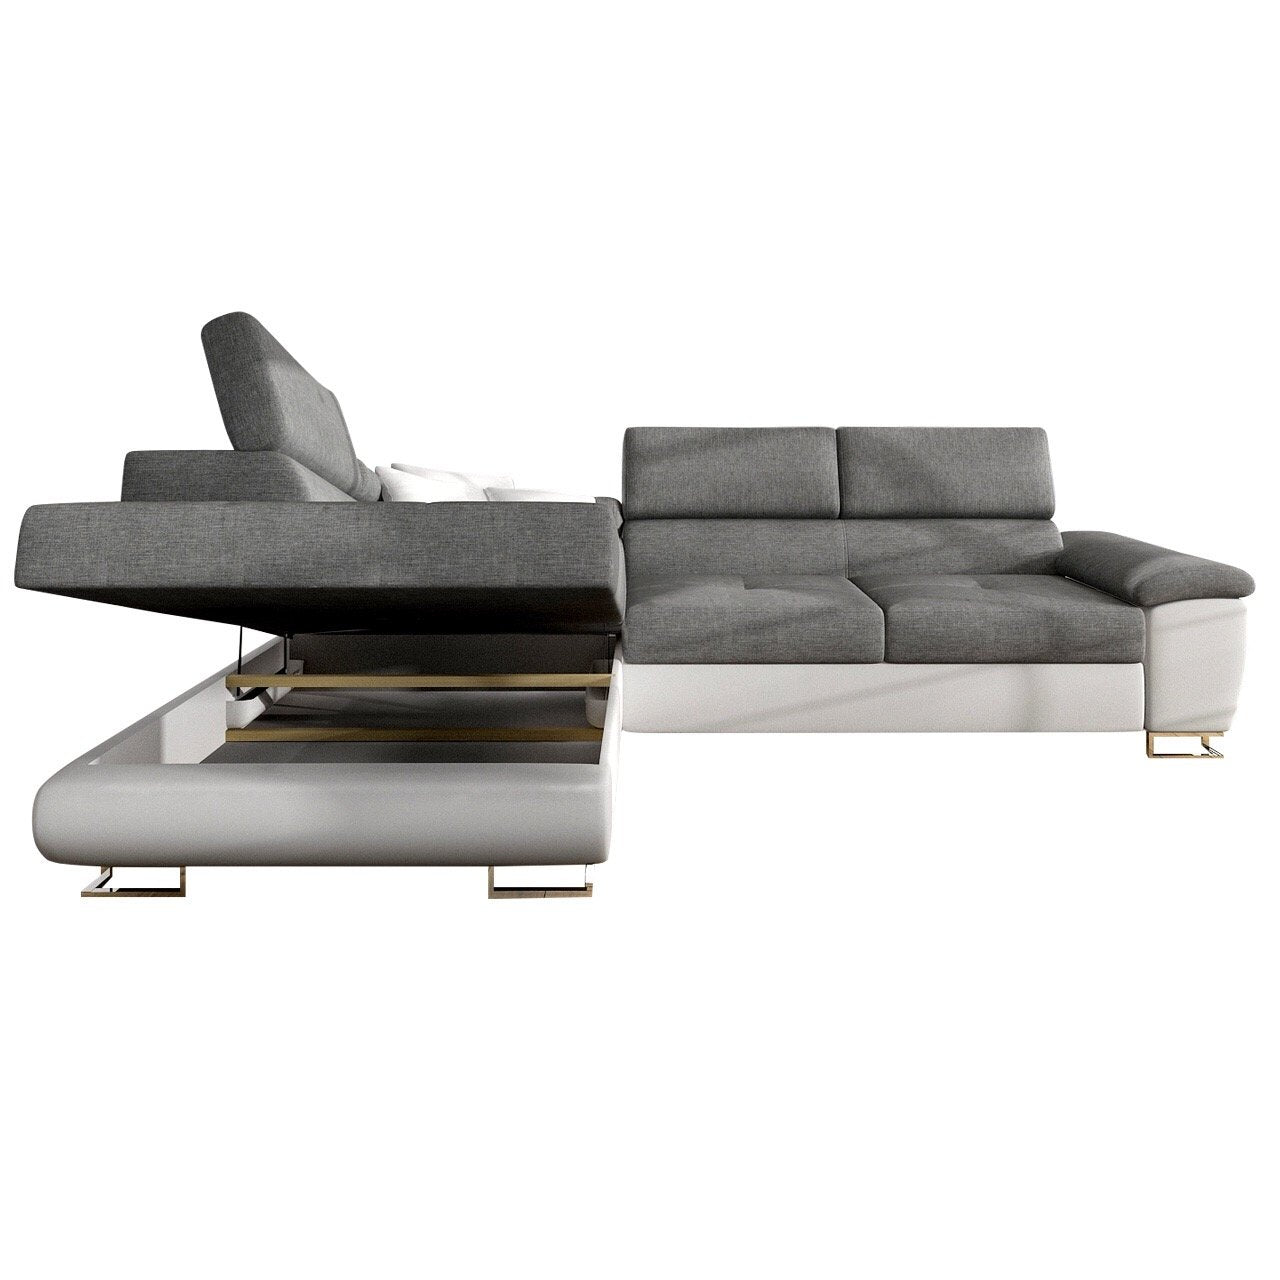 Modern Corner Sofa Bed - SD150